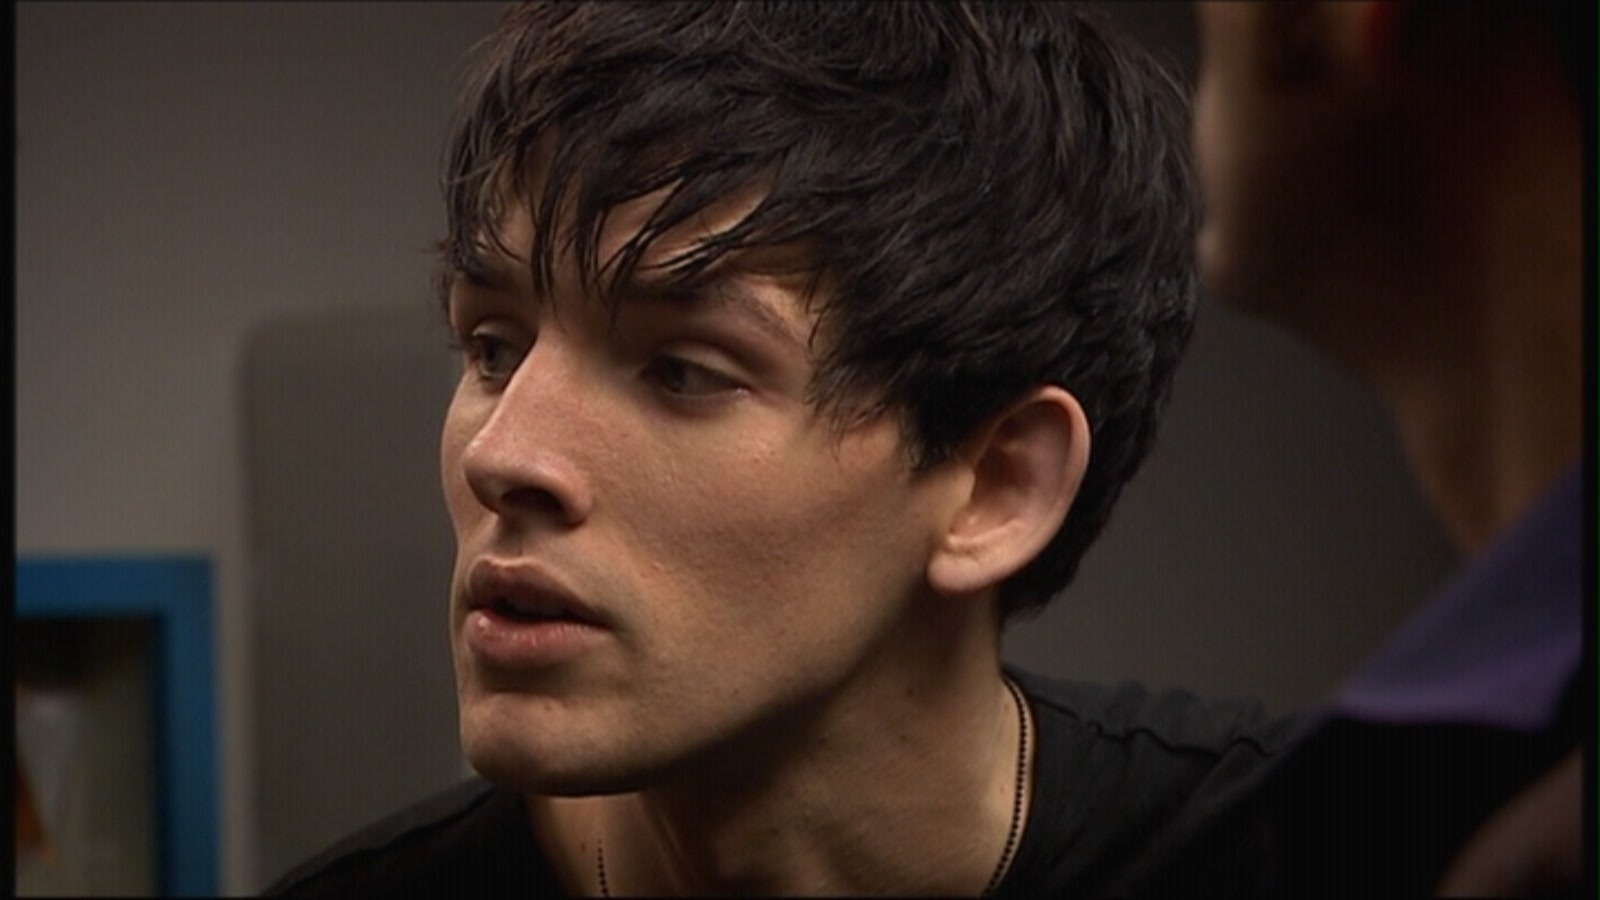 Doctor Who Colin Morgan Image 9919981 Fanpop